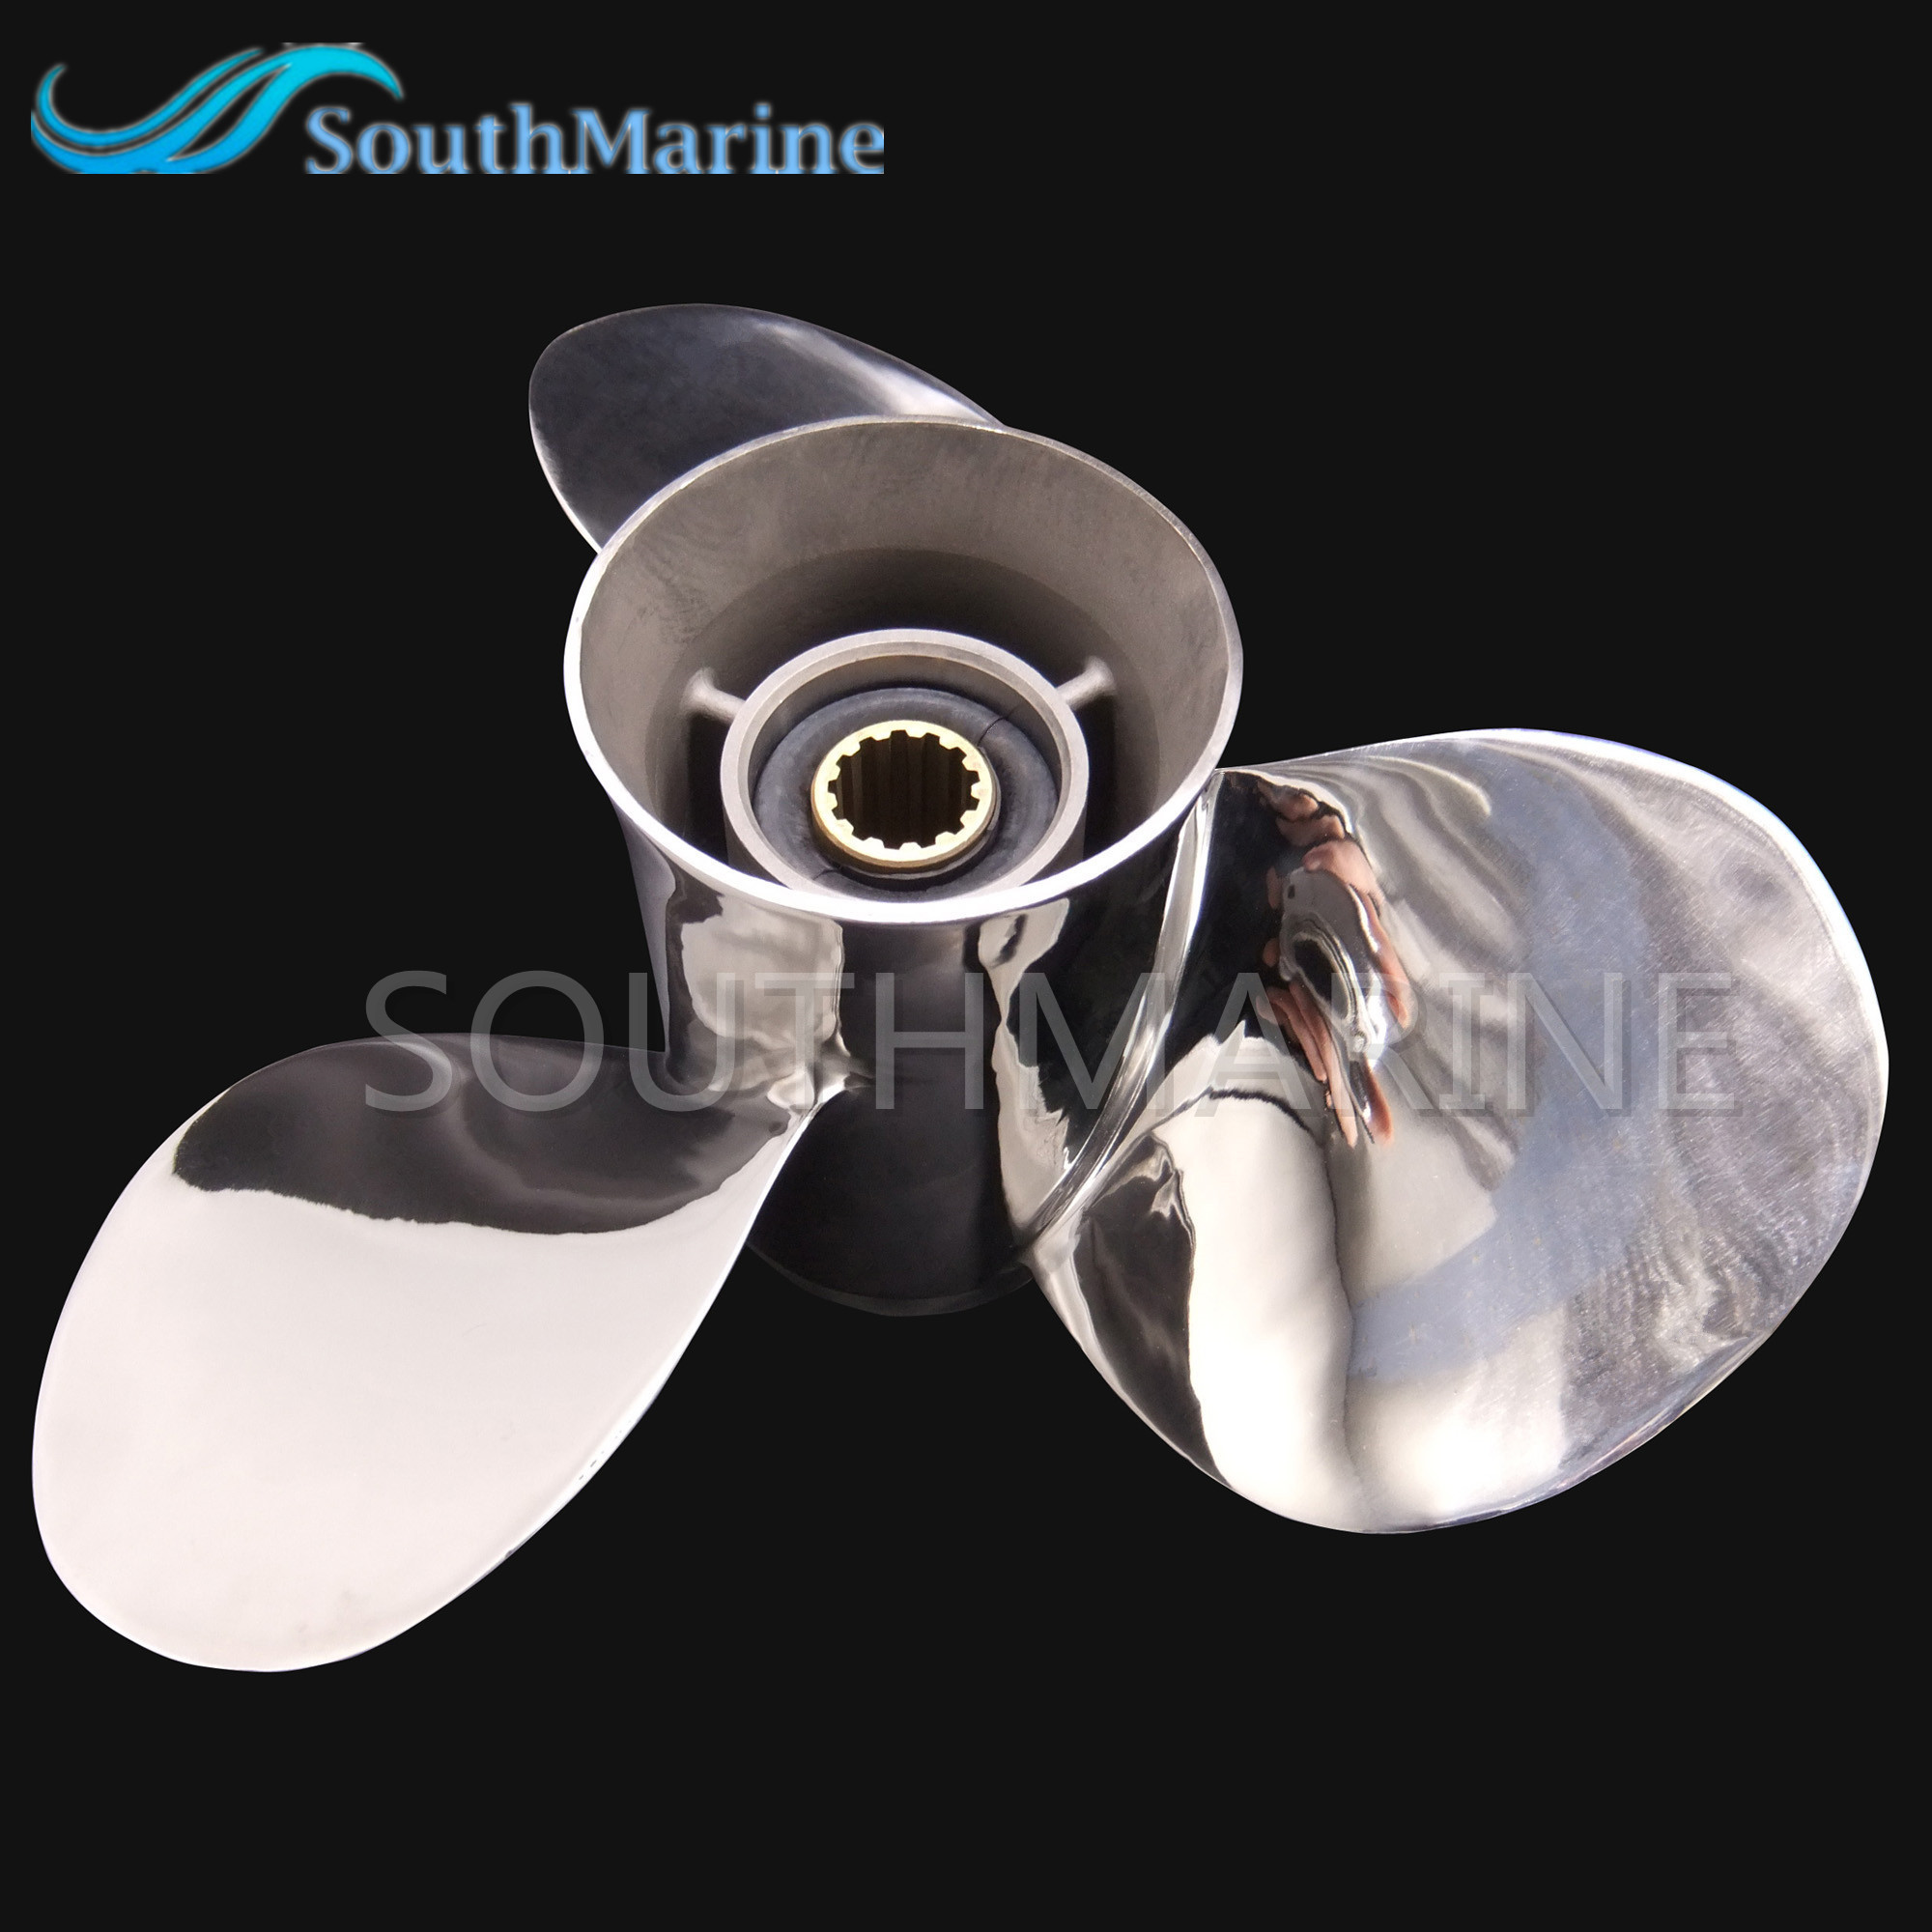 Stainless Steel Propeller 11 3/8x12-G For Yamaha 40HP 50HP Outboard Motor Boat Engine 11 3/8 x 12 -G 13 splines,Free Shipping free shipping 3 3 1 2m water banana boat for sport games